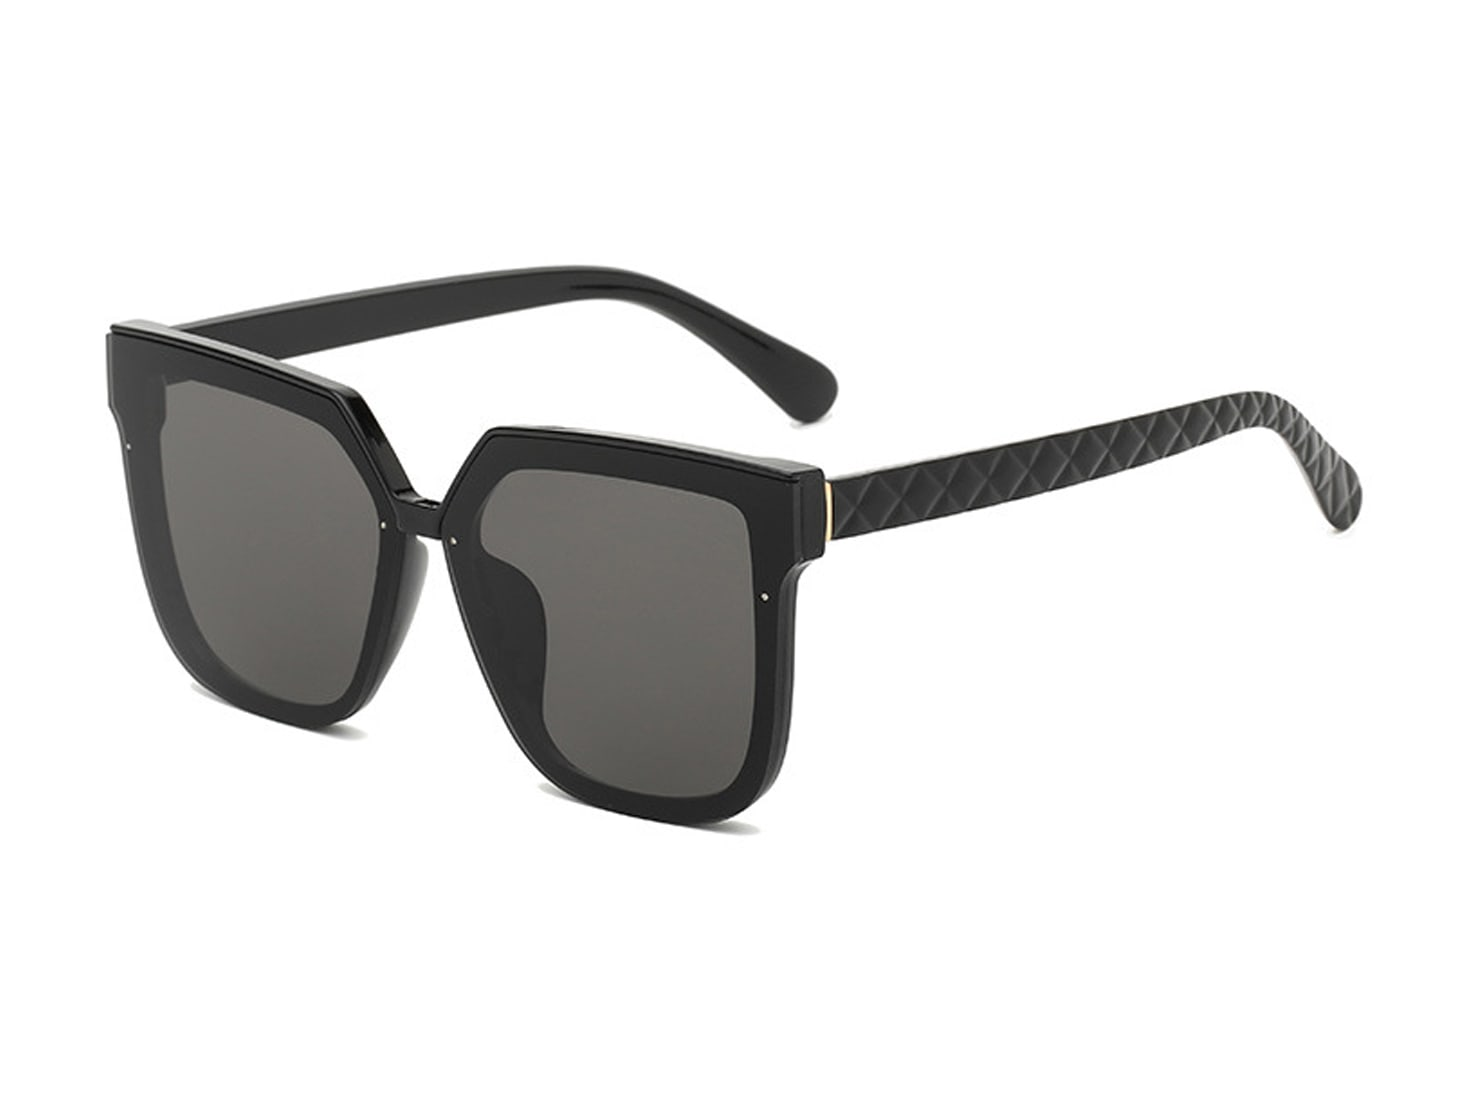 Trailblazer Cat-Eye Shades - Black - Back